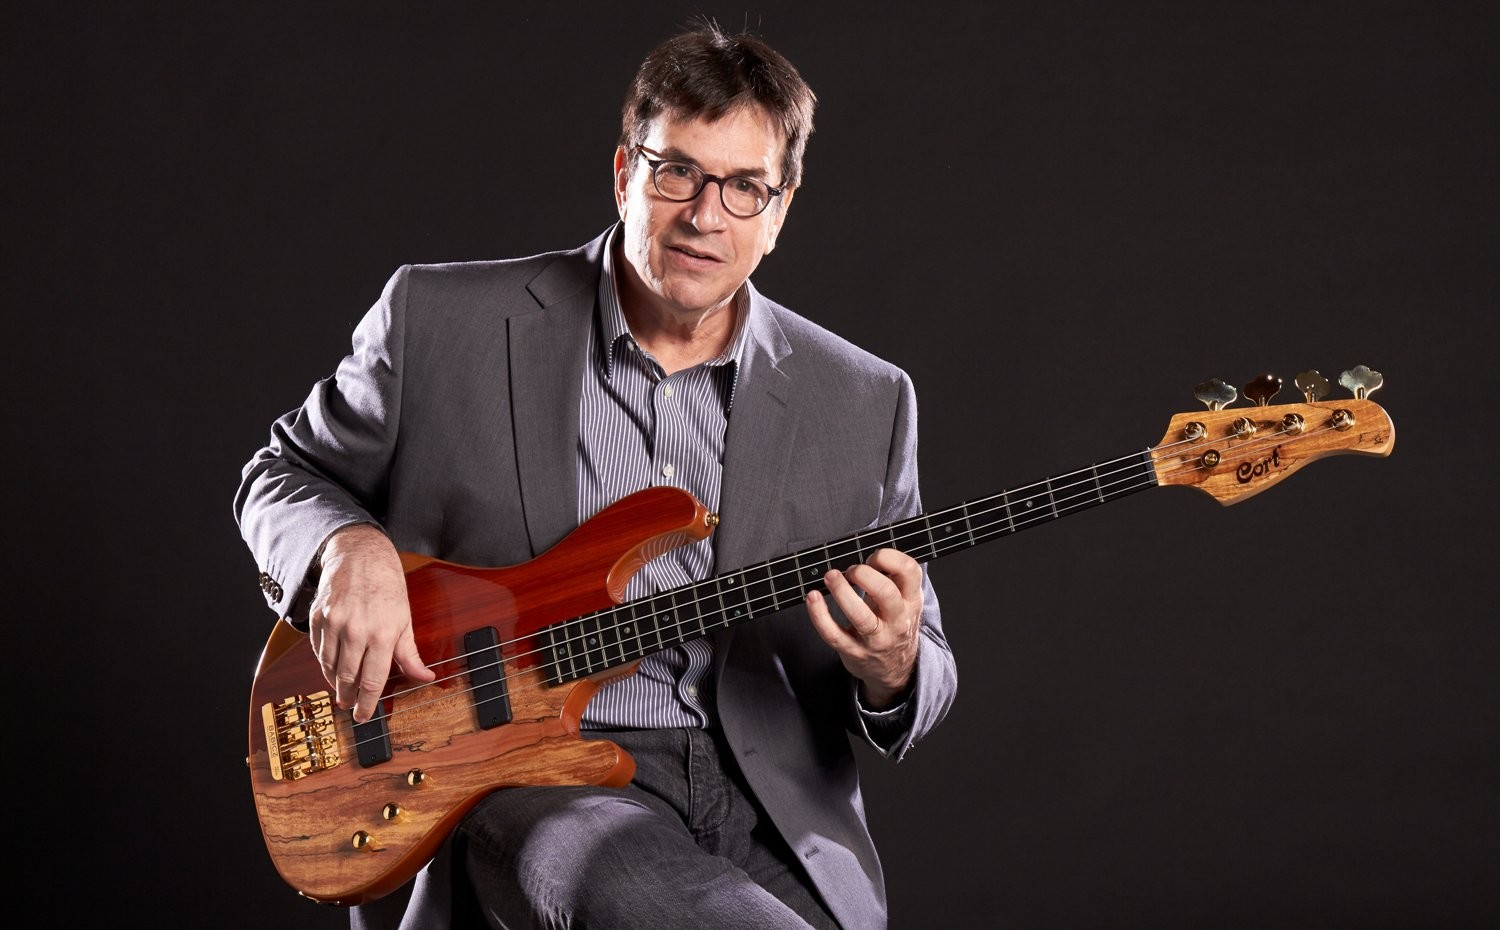 Jeff Berlin, the premiere electric bass player, makes his LBJF debut, among the renowned musicians who will appear on the festival stage.